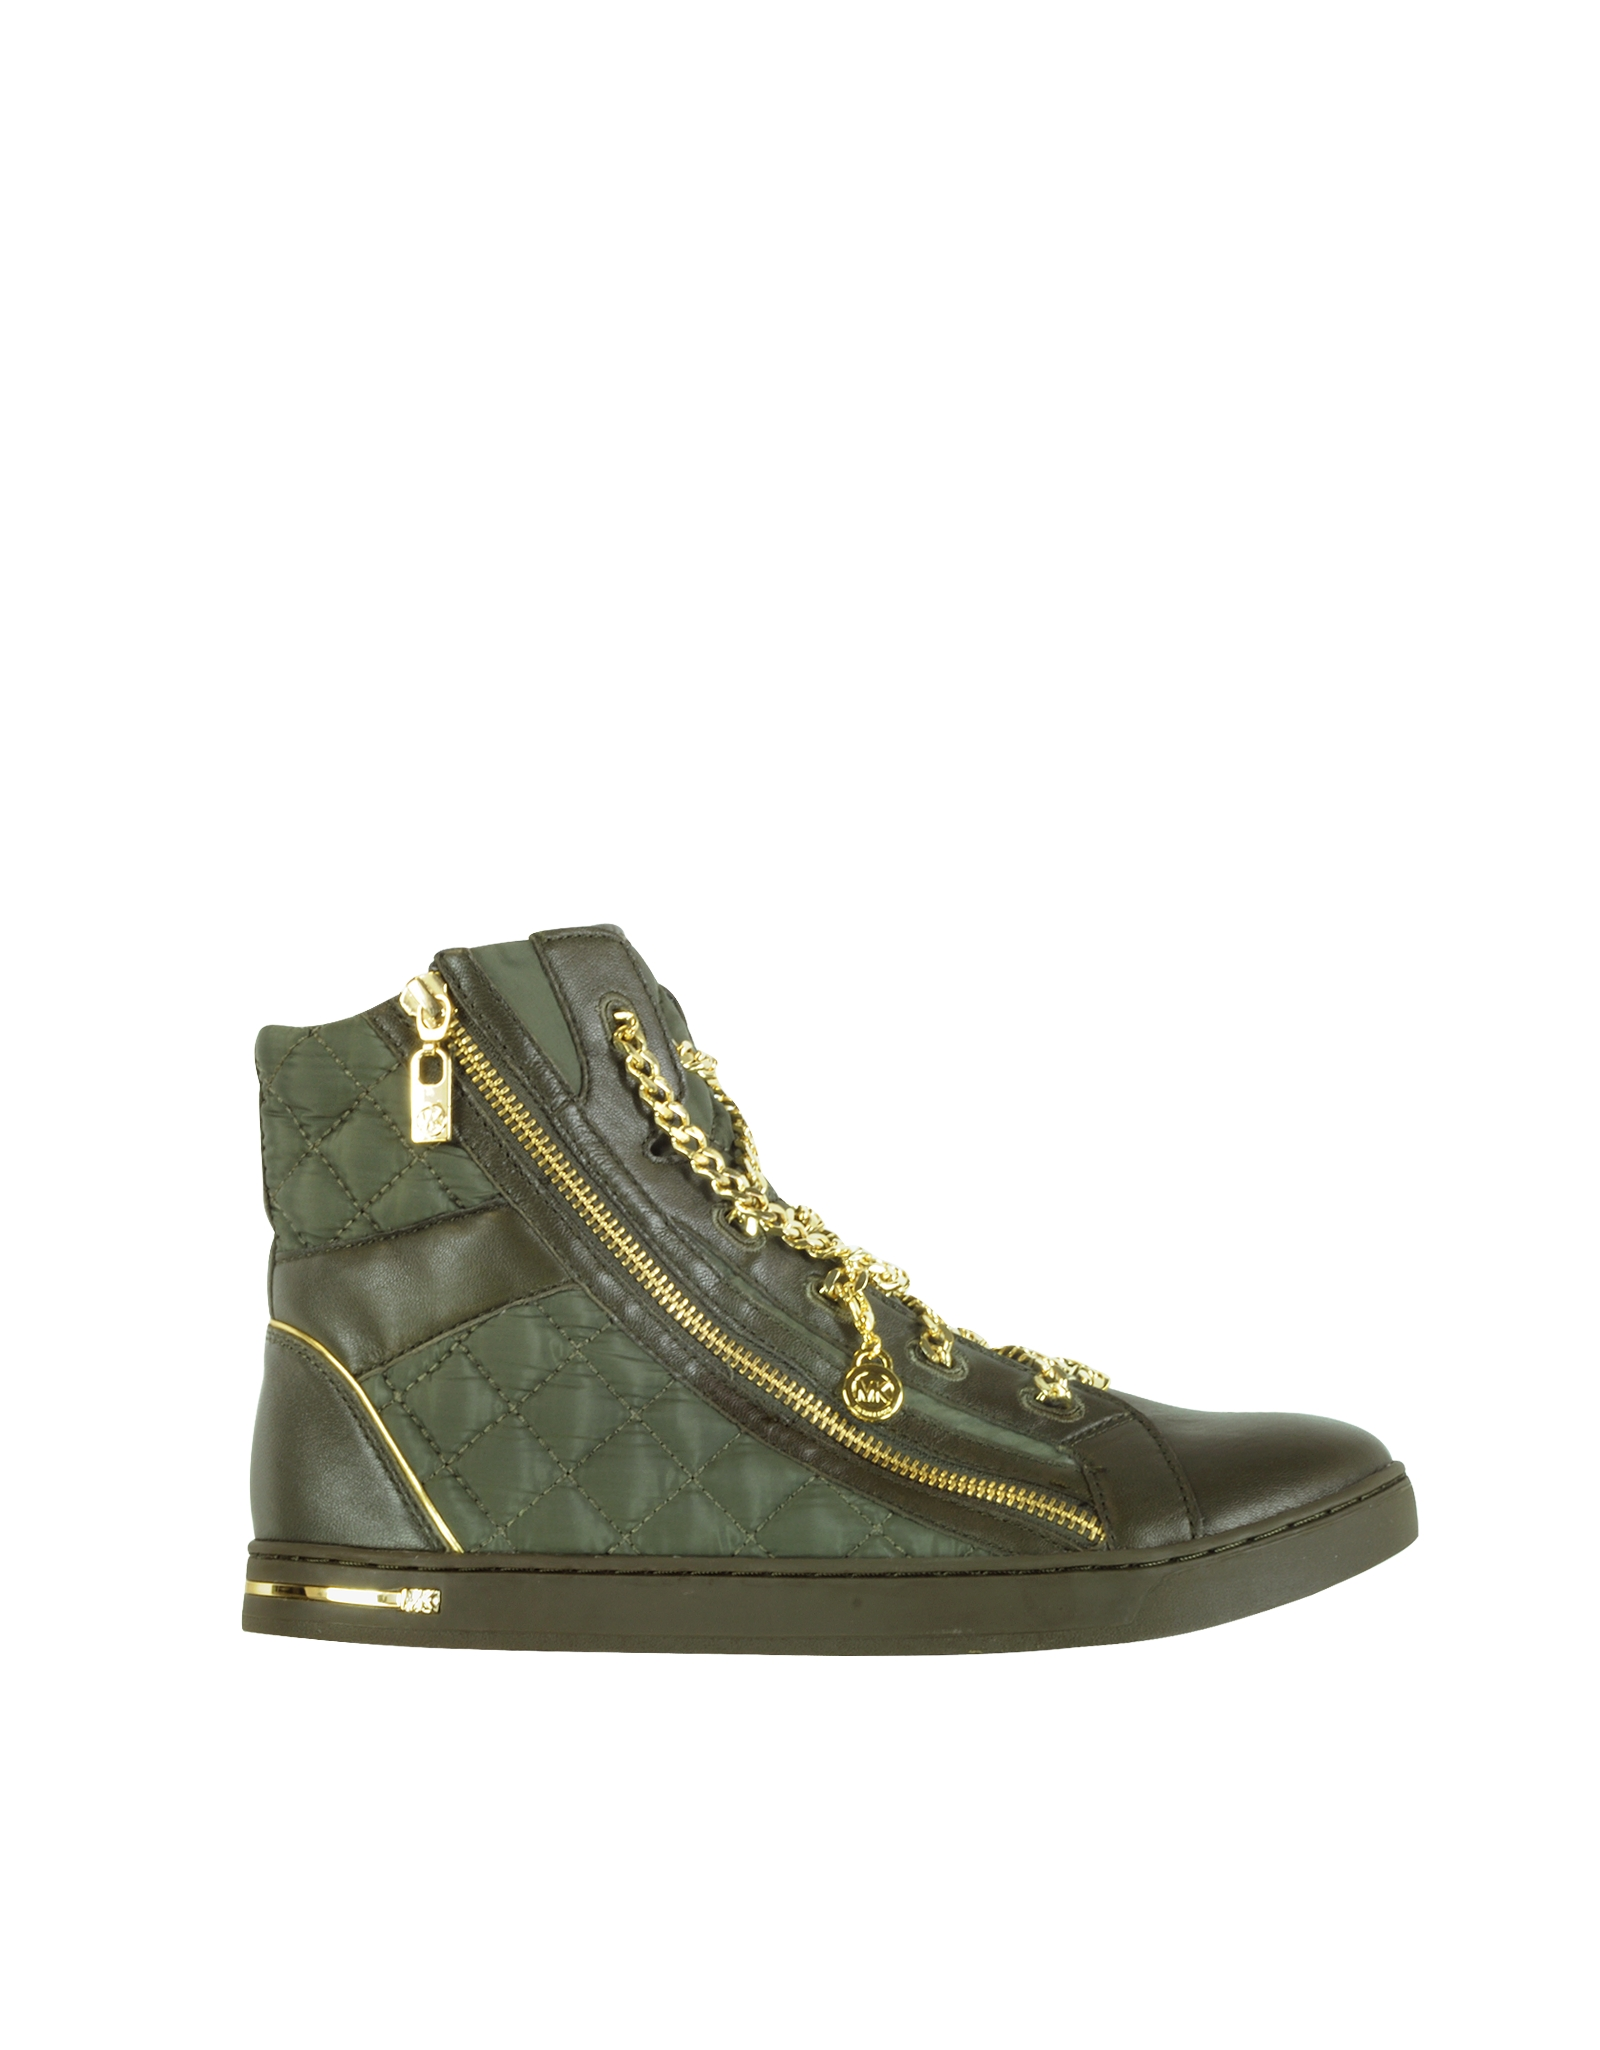 michael kors quilted nylon urban chain high top sneaker in green lyst. Black Bedroom Furniture Sets. Home Design Ideas